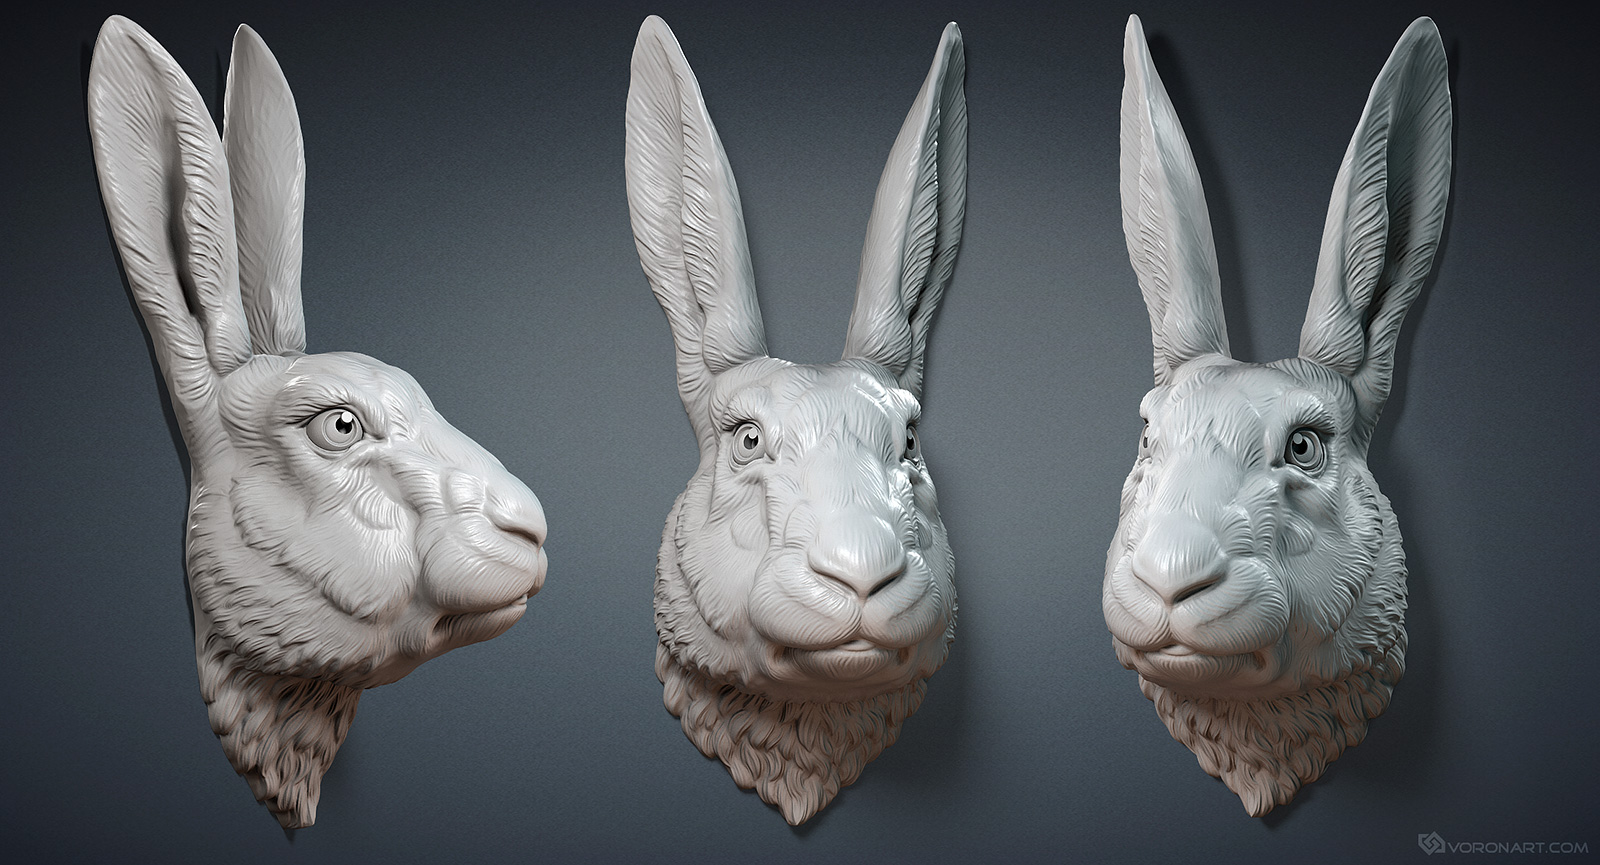 Hare Rabbit Head 3d Model For 3d Printing Zbrush Digital Sculpting